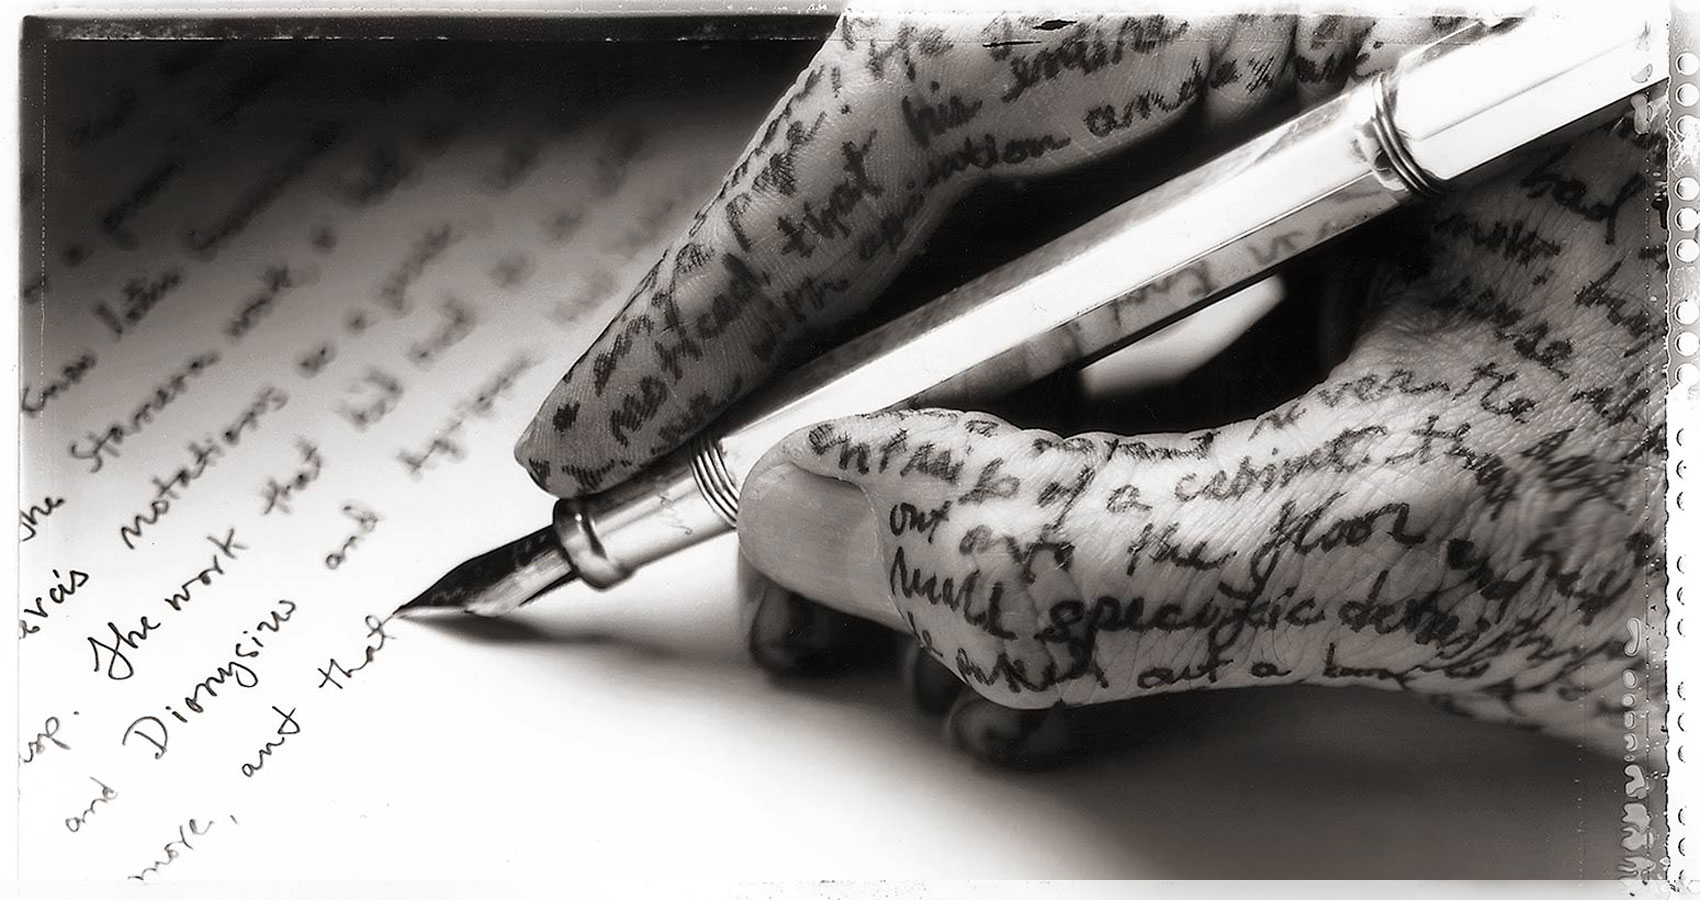 Pros of Prose written by Rob Clark at Spillwords.com